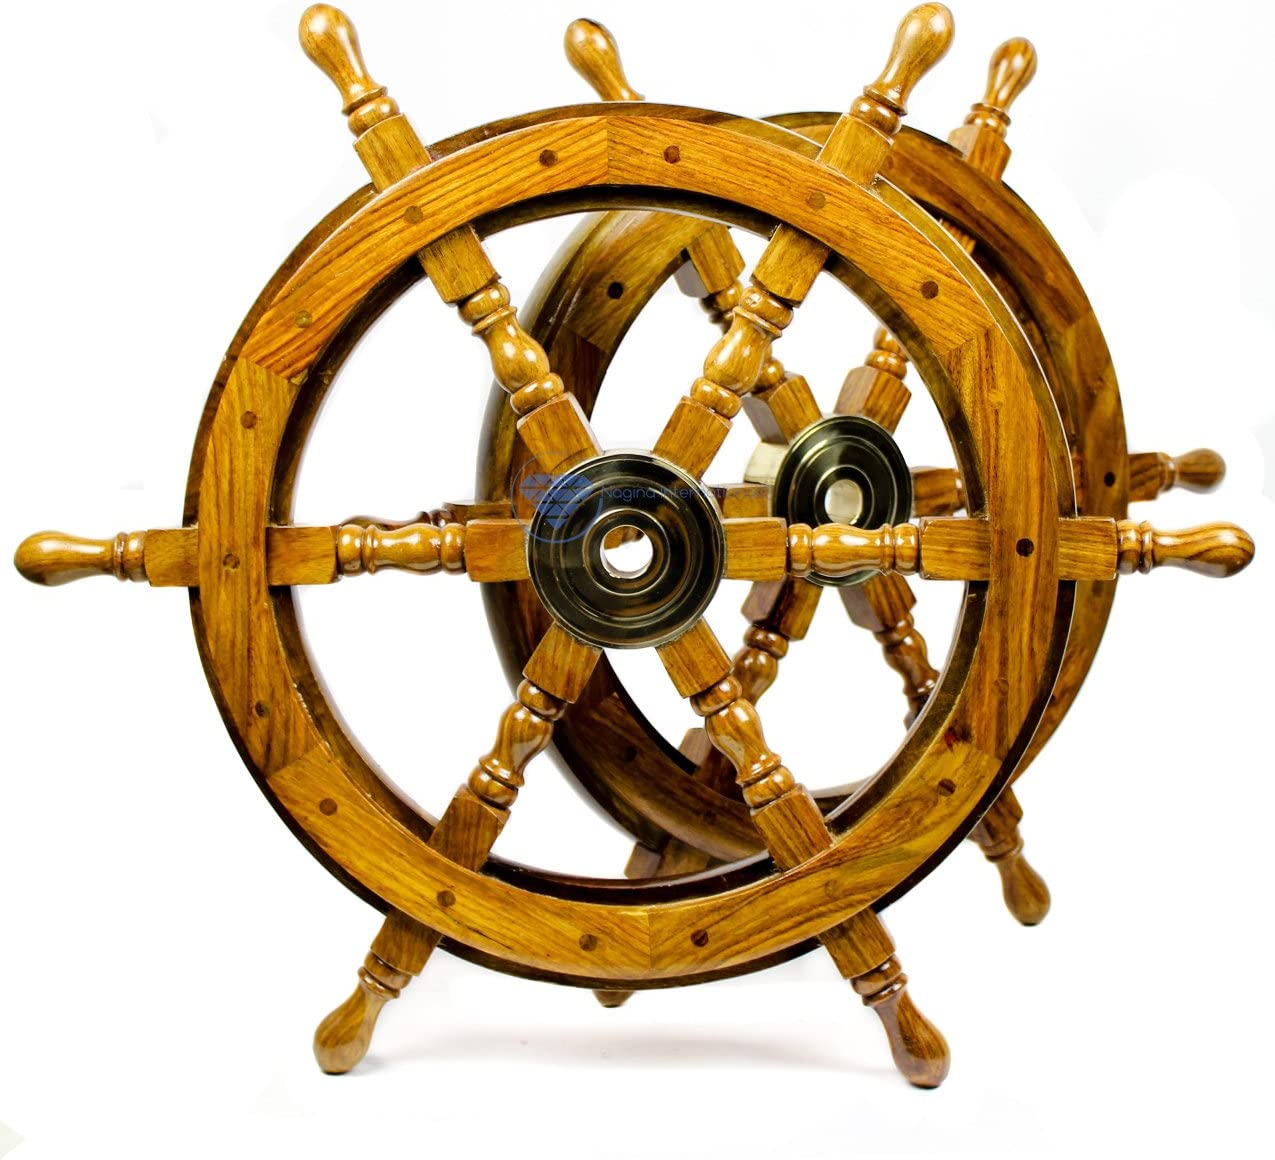 Nagina International Nautical Handcrafted Wooden Ship Wheel - Home Wall Decor (24 Inches, Natural Wood)